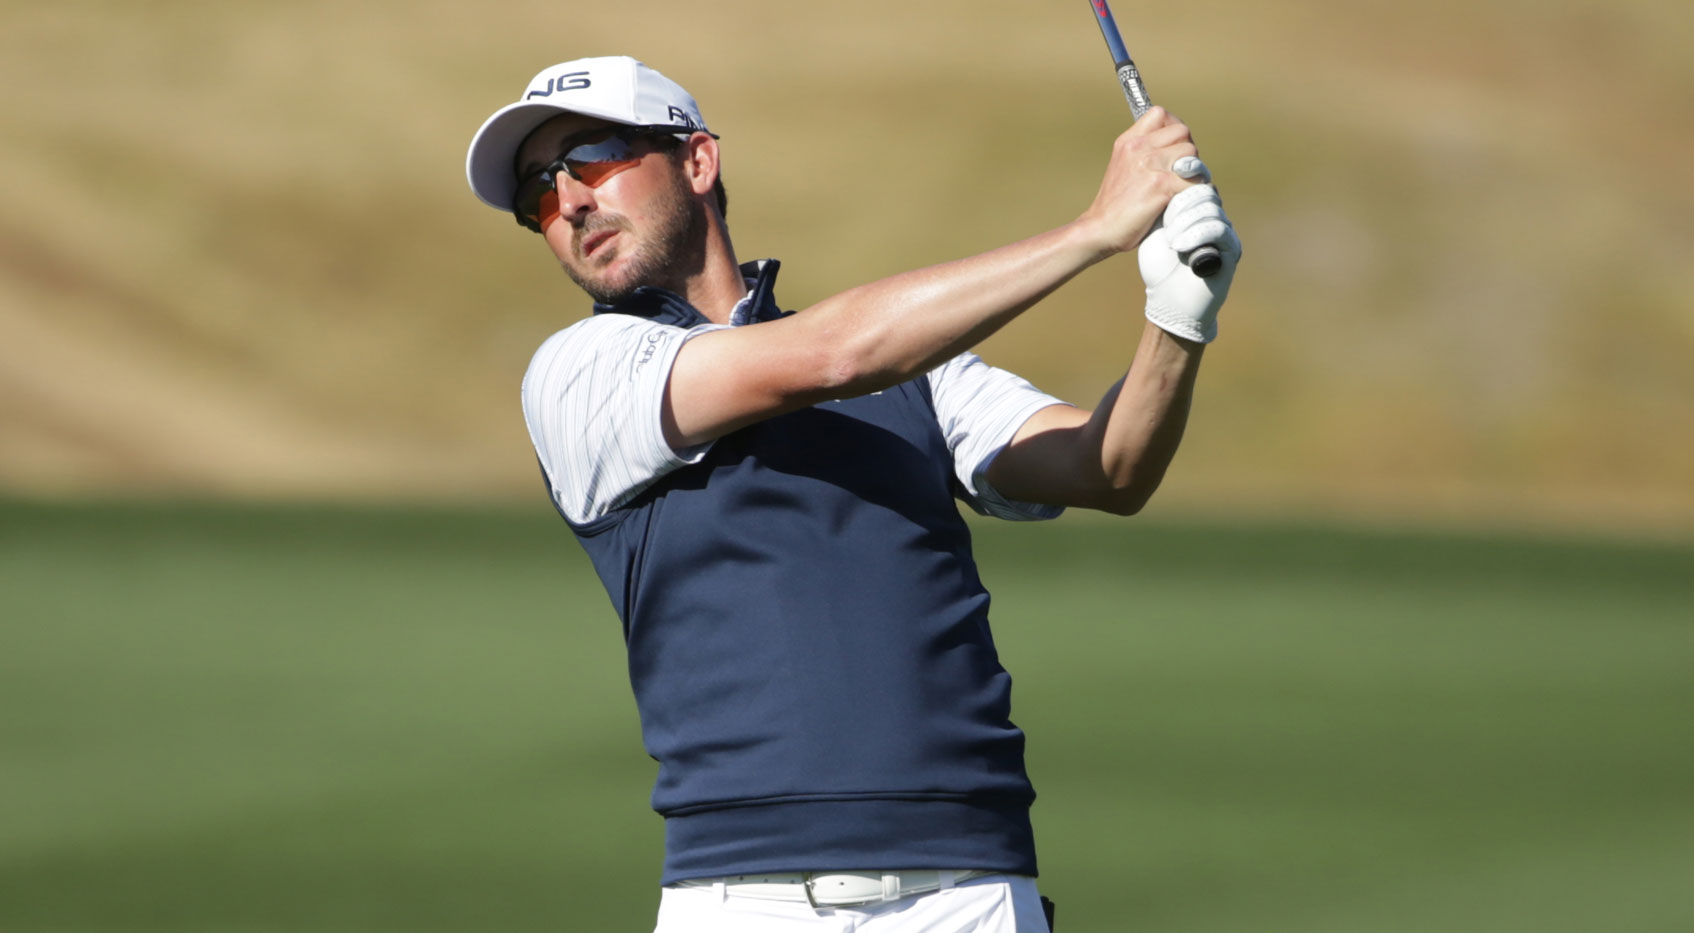 Landry, Scheffler ahead of the pack at The American Express